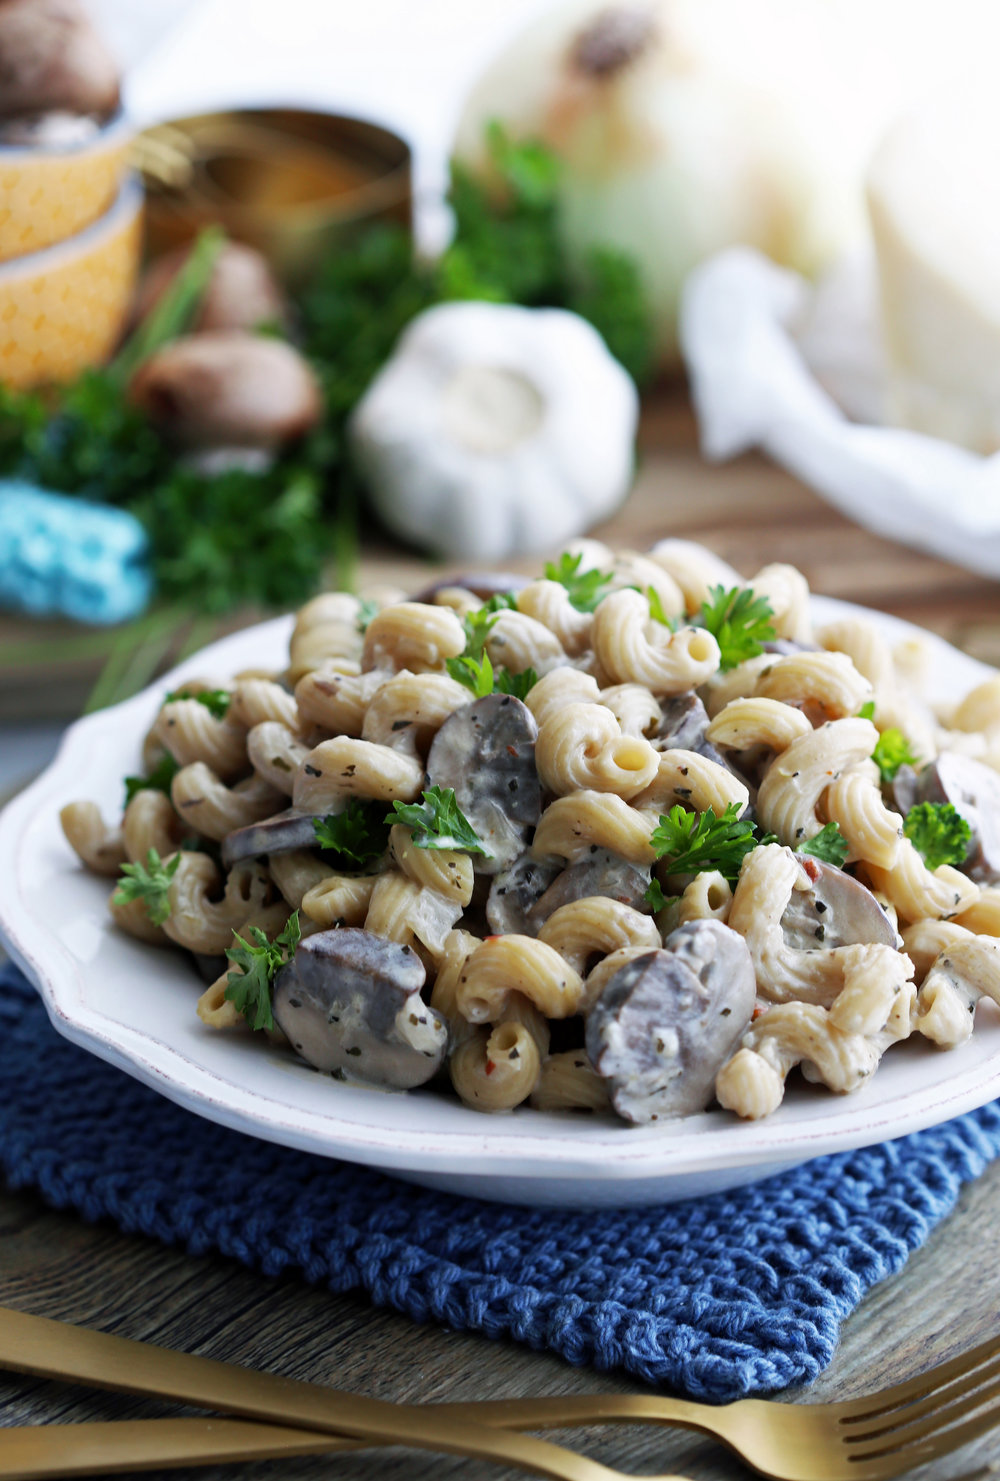 Close-up side view of mushroom pasta with creamy parmesan sauce in a white pasta bowl.